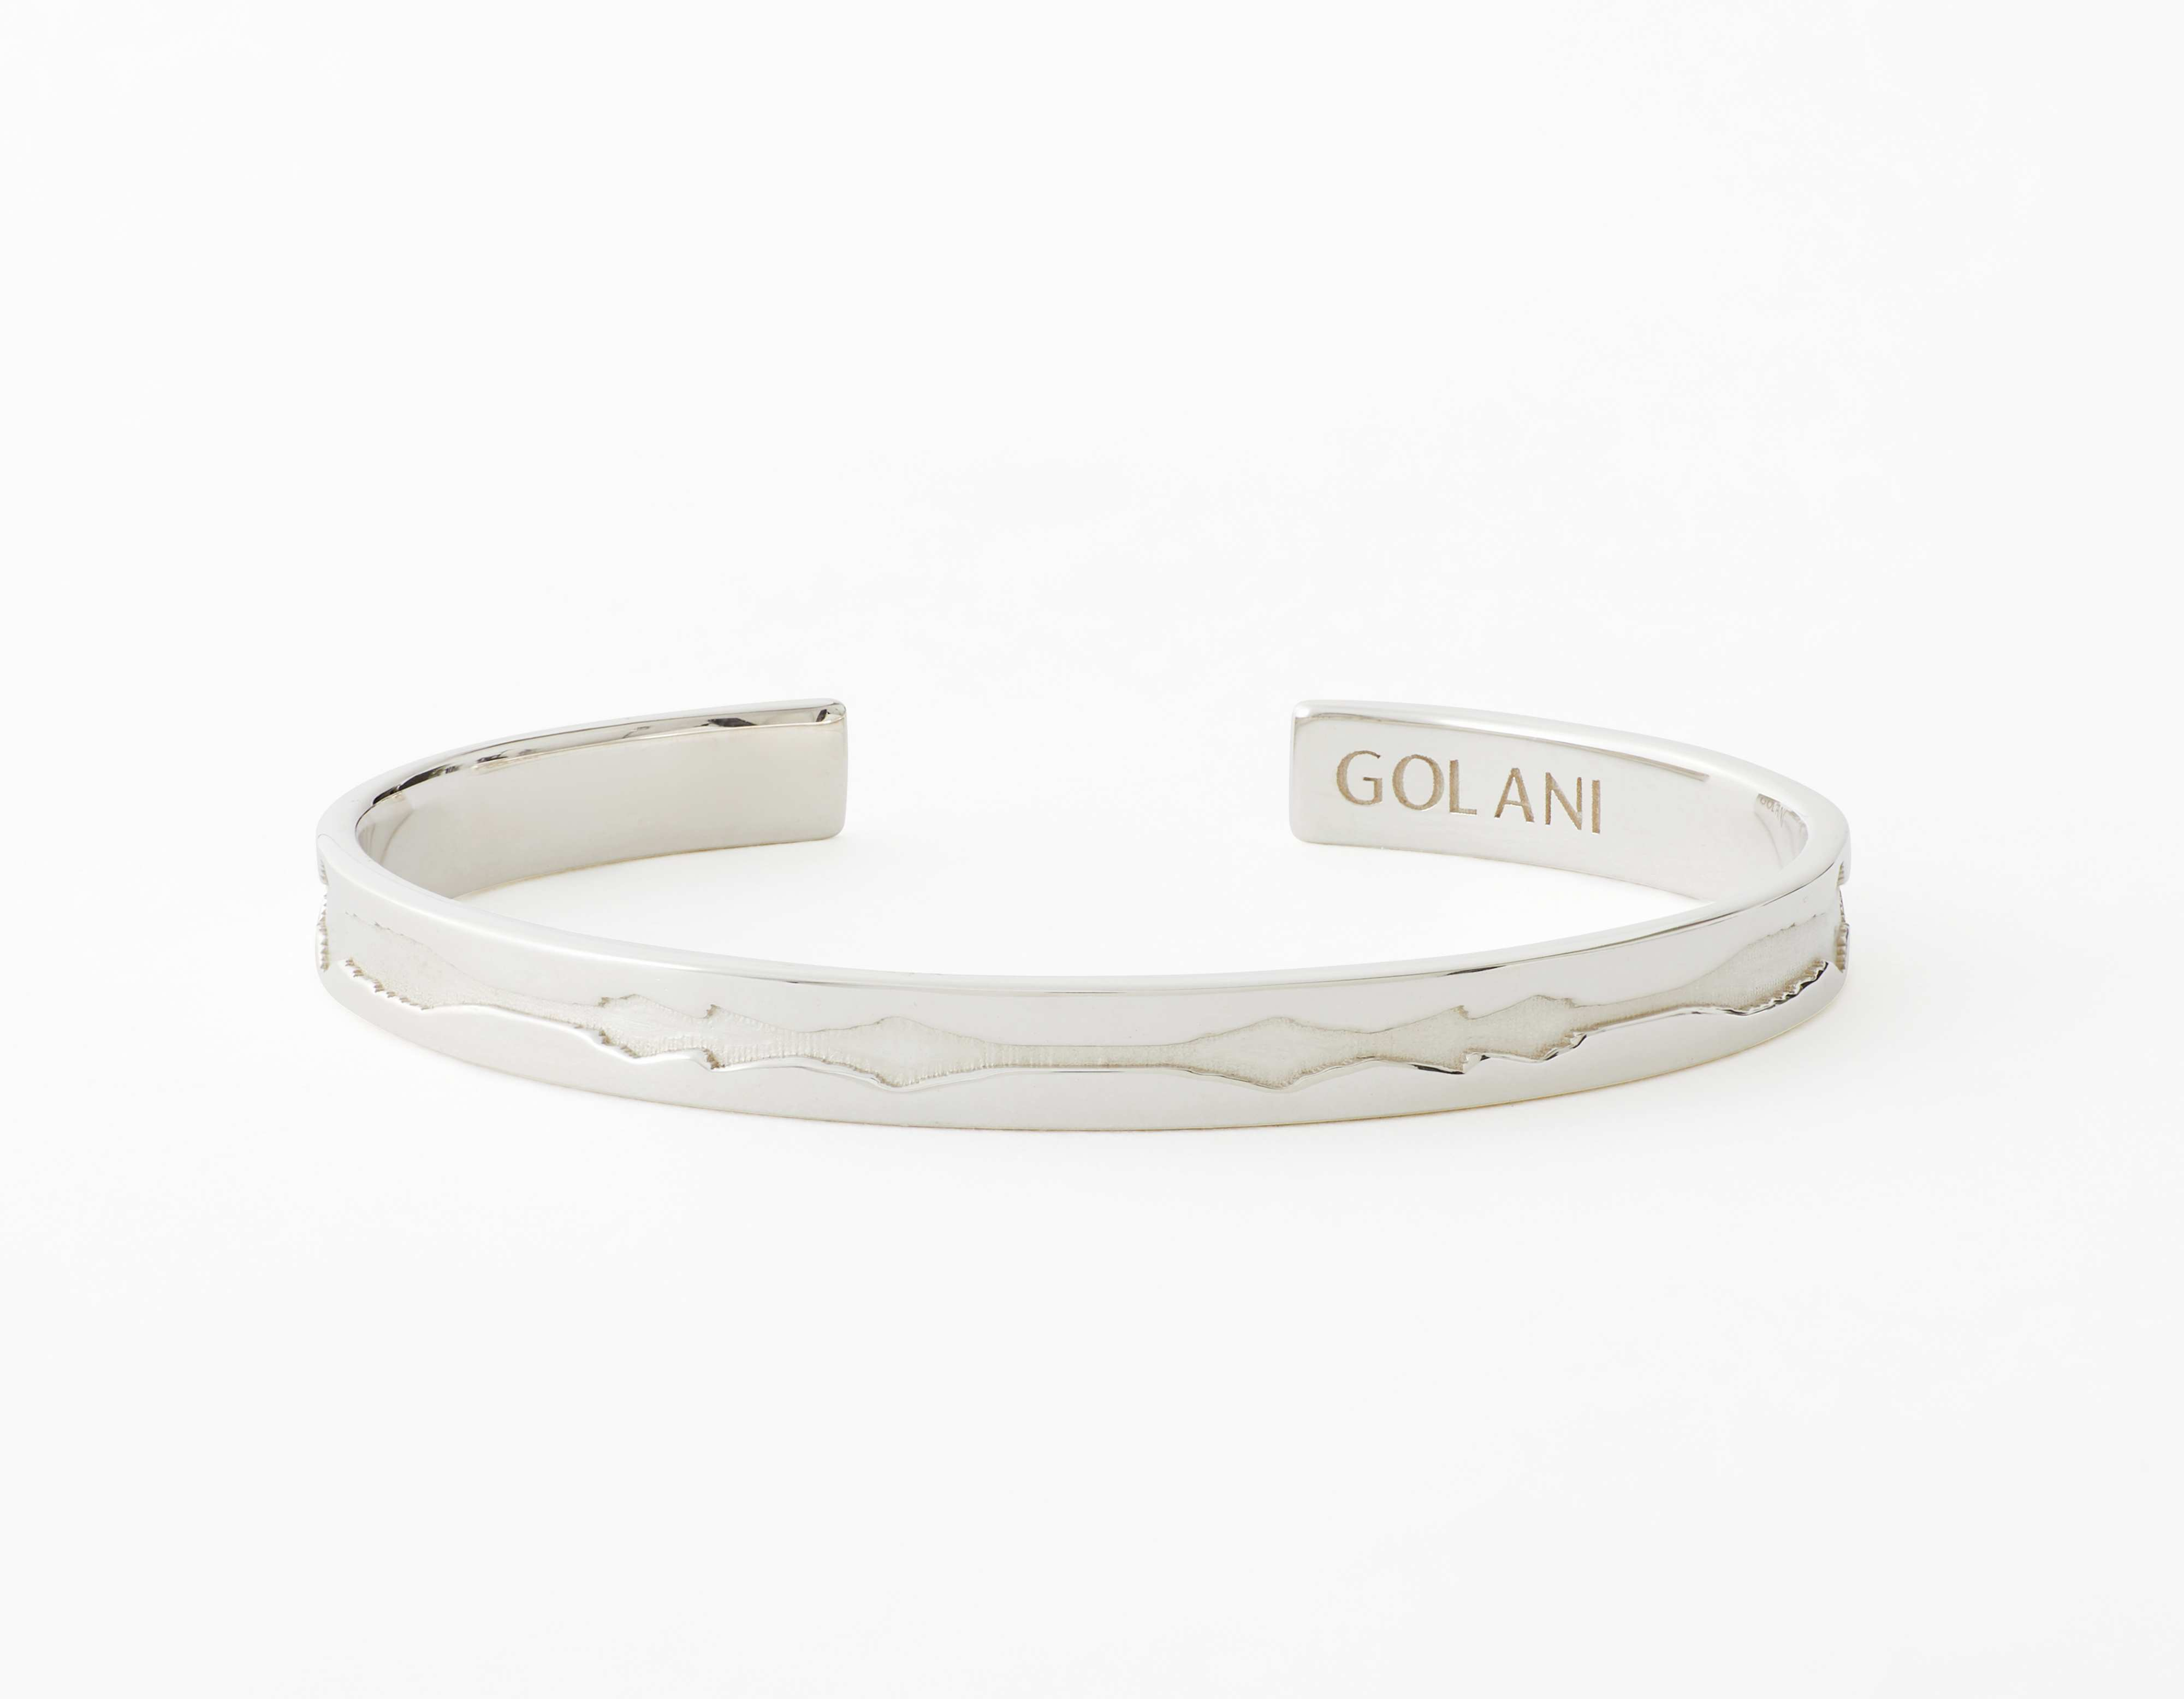 The Outer Wave Bracelet placed horizontal in White Gold